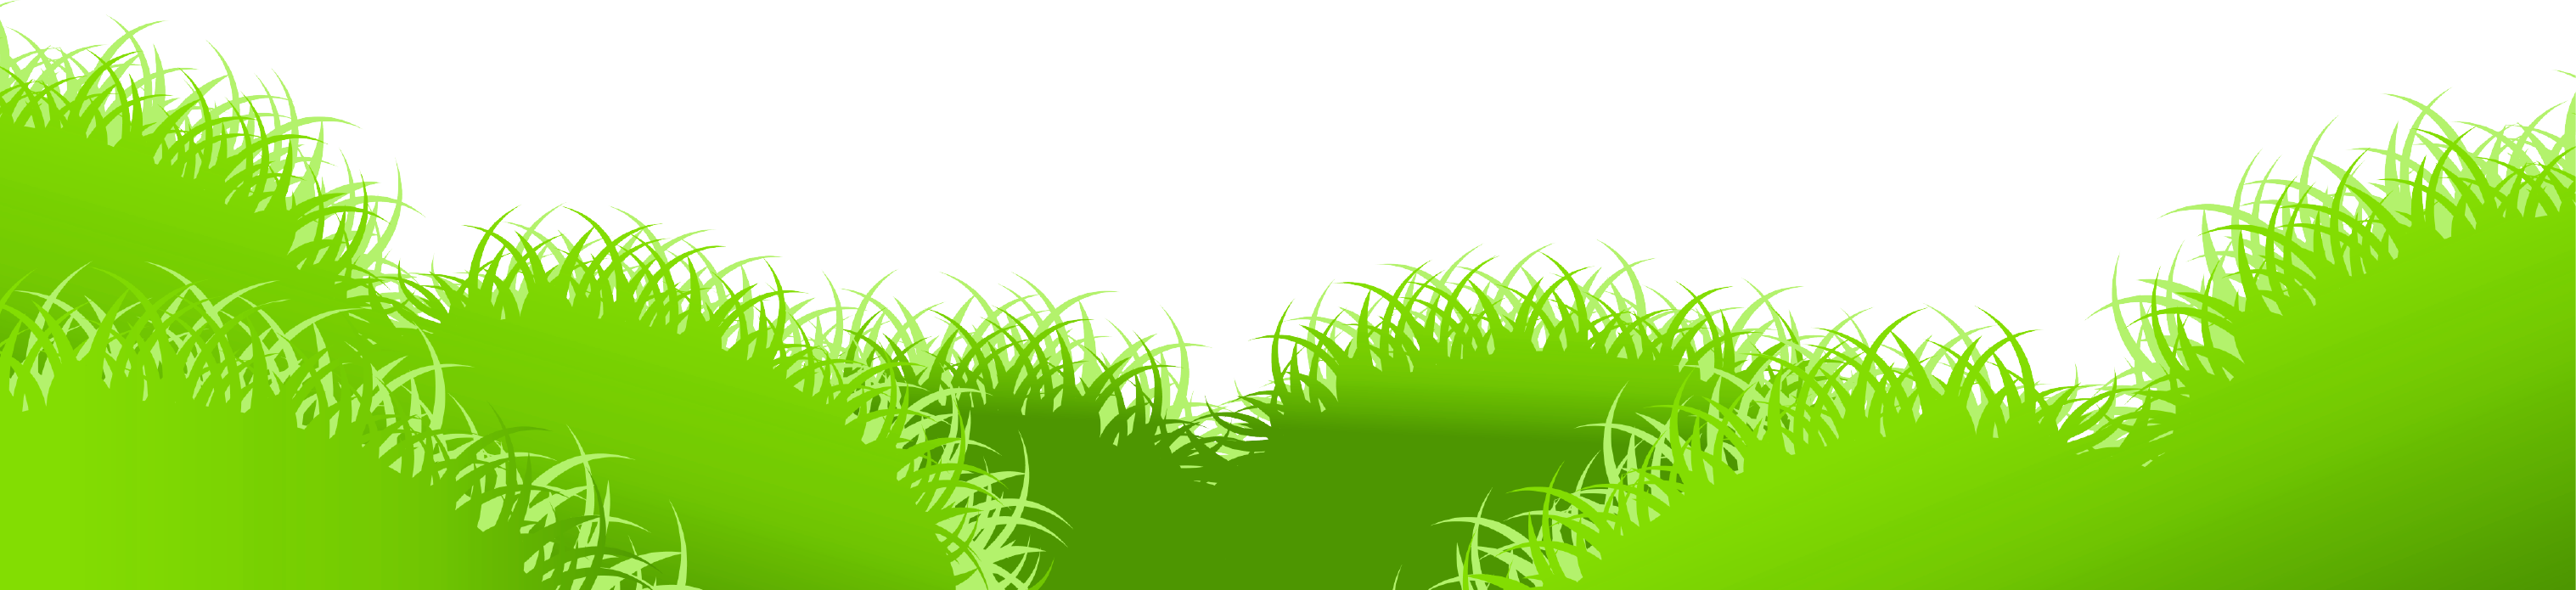 Grass  black and white grass clipart black and white free images 4 wikiclipart